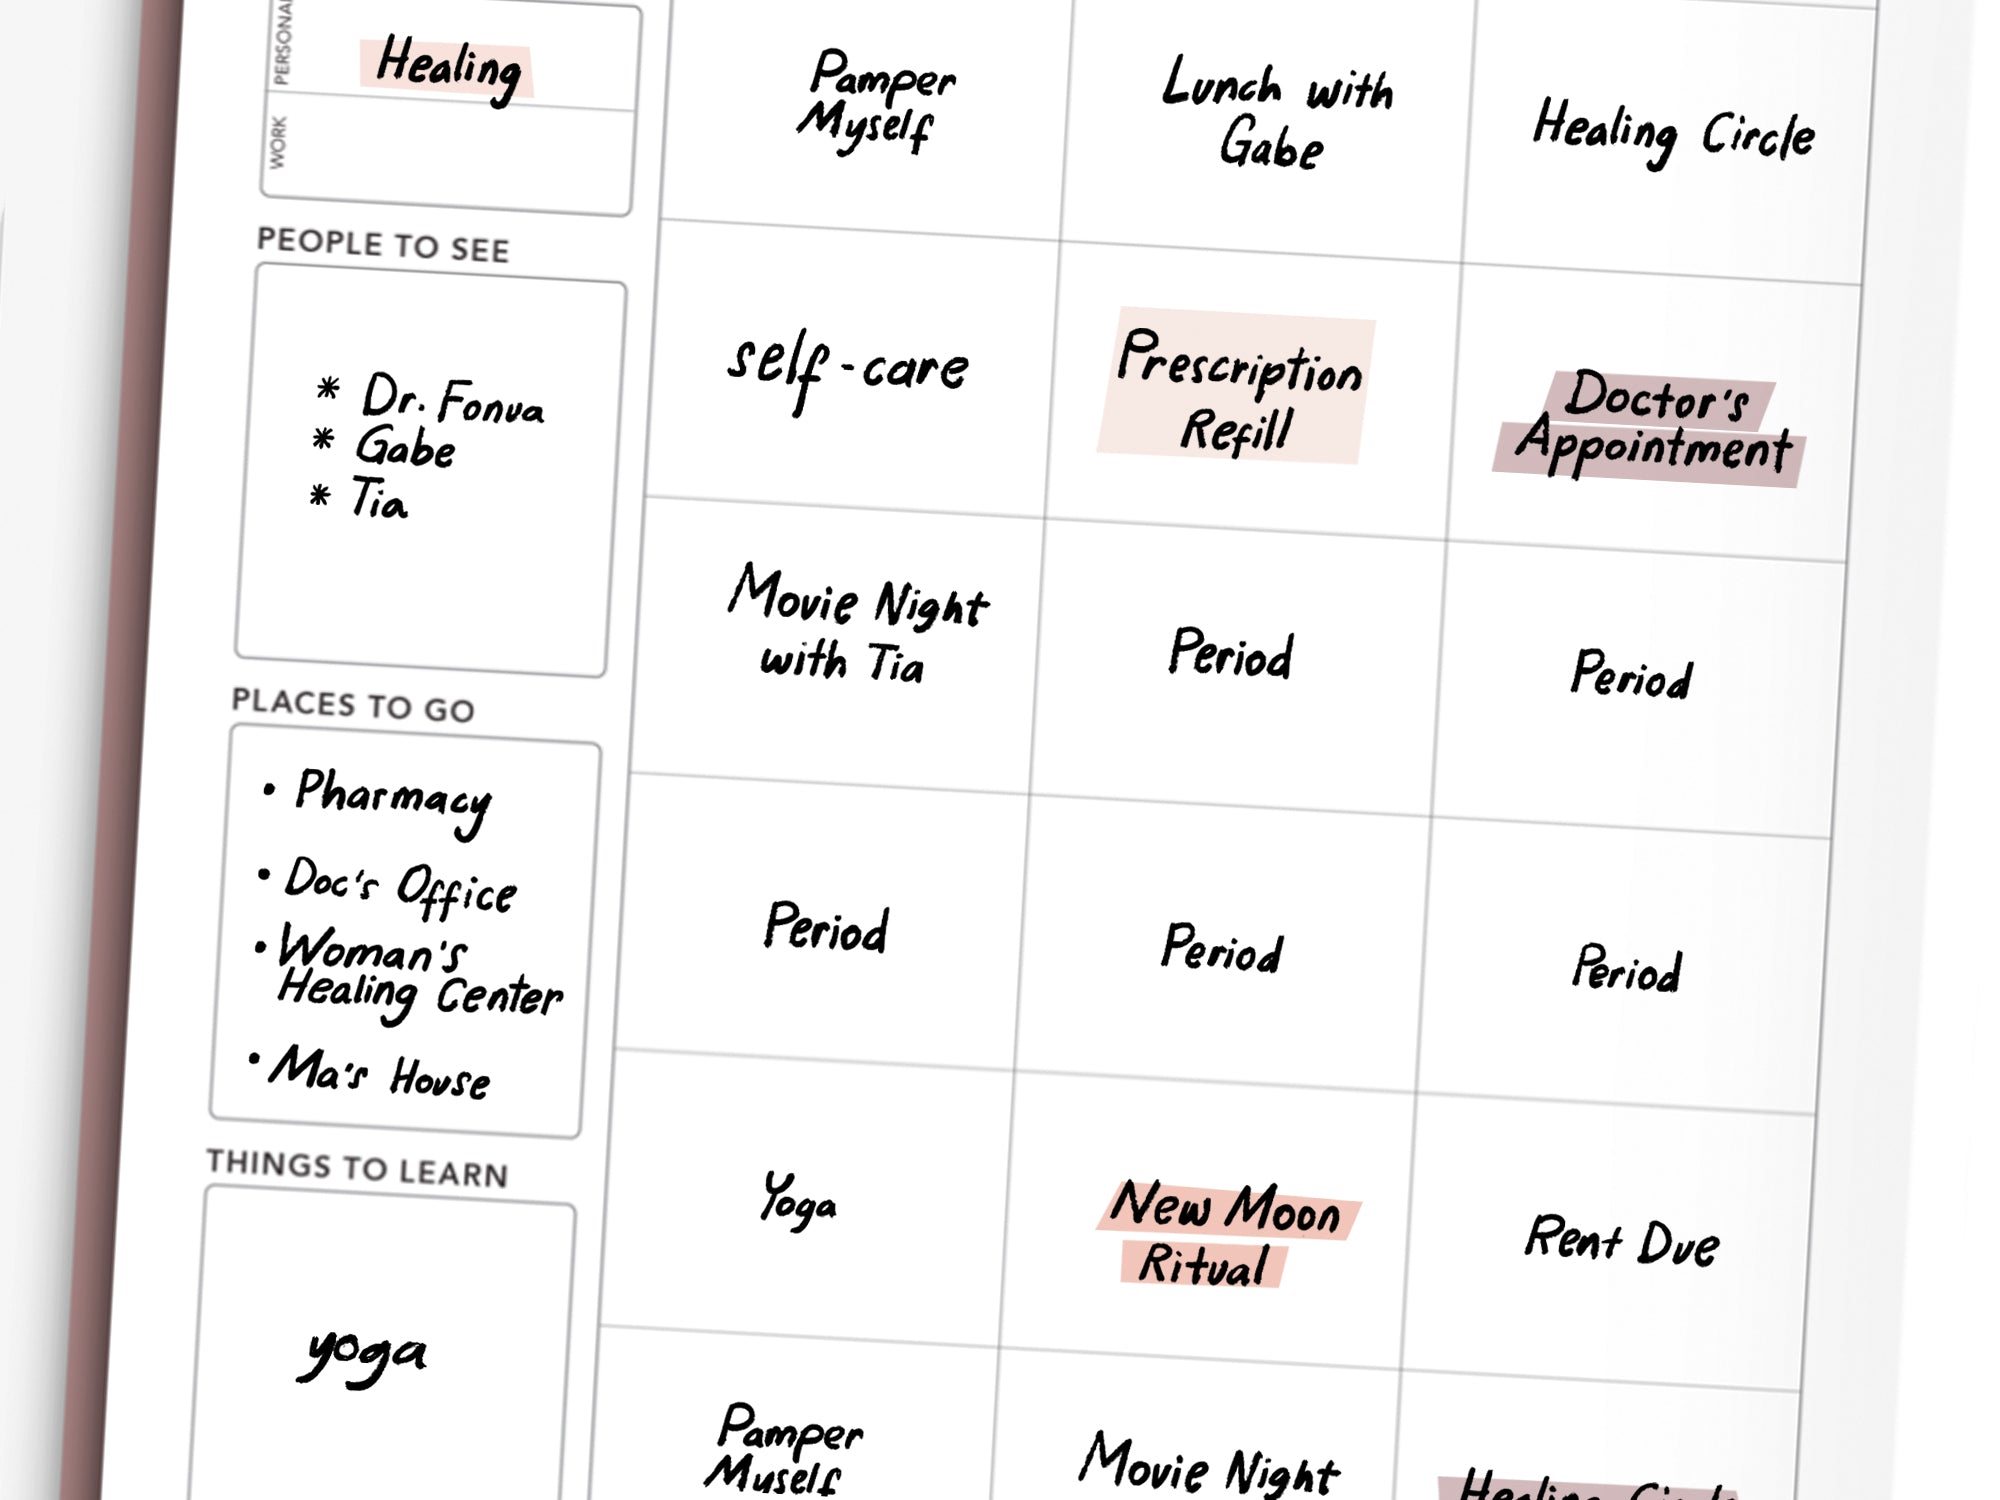 Stay on top of doctor's appointments and managing prescriptions with the Monthly Overview of your Passion Planner.